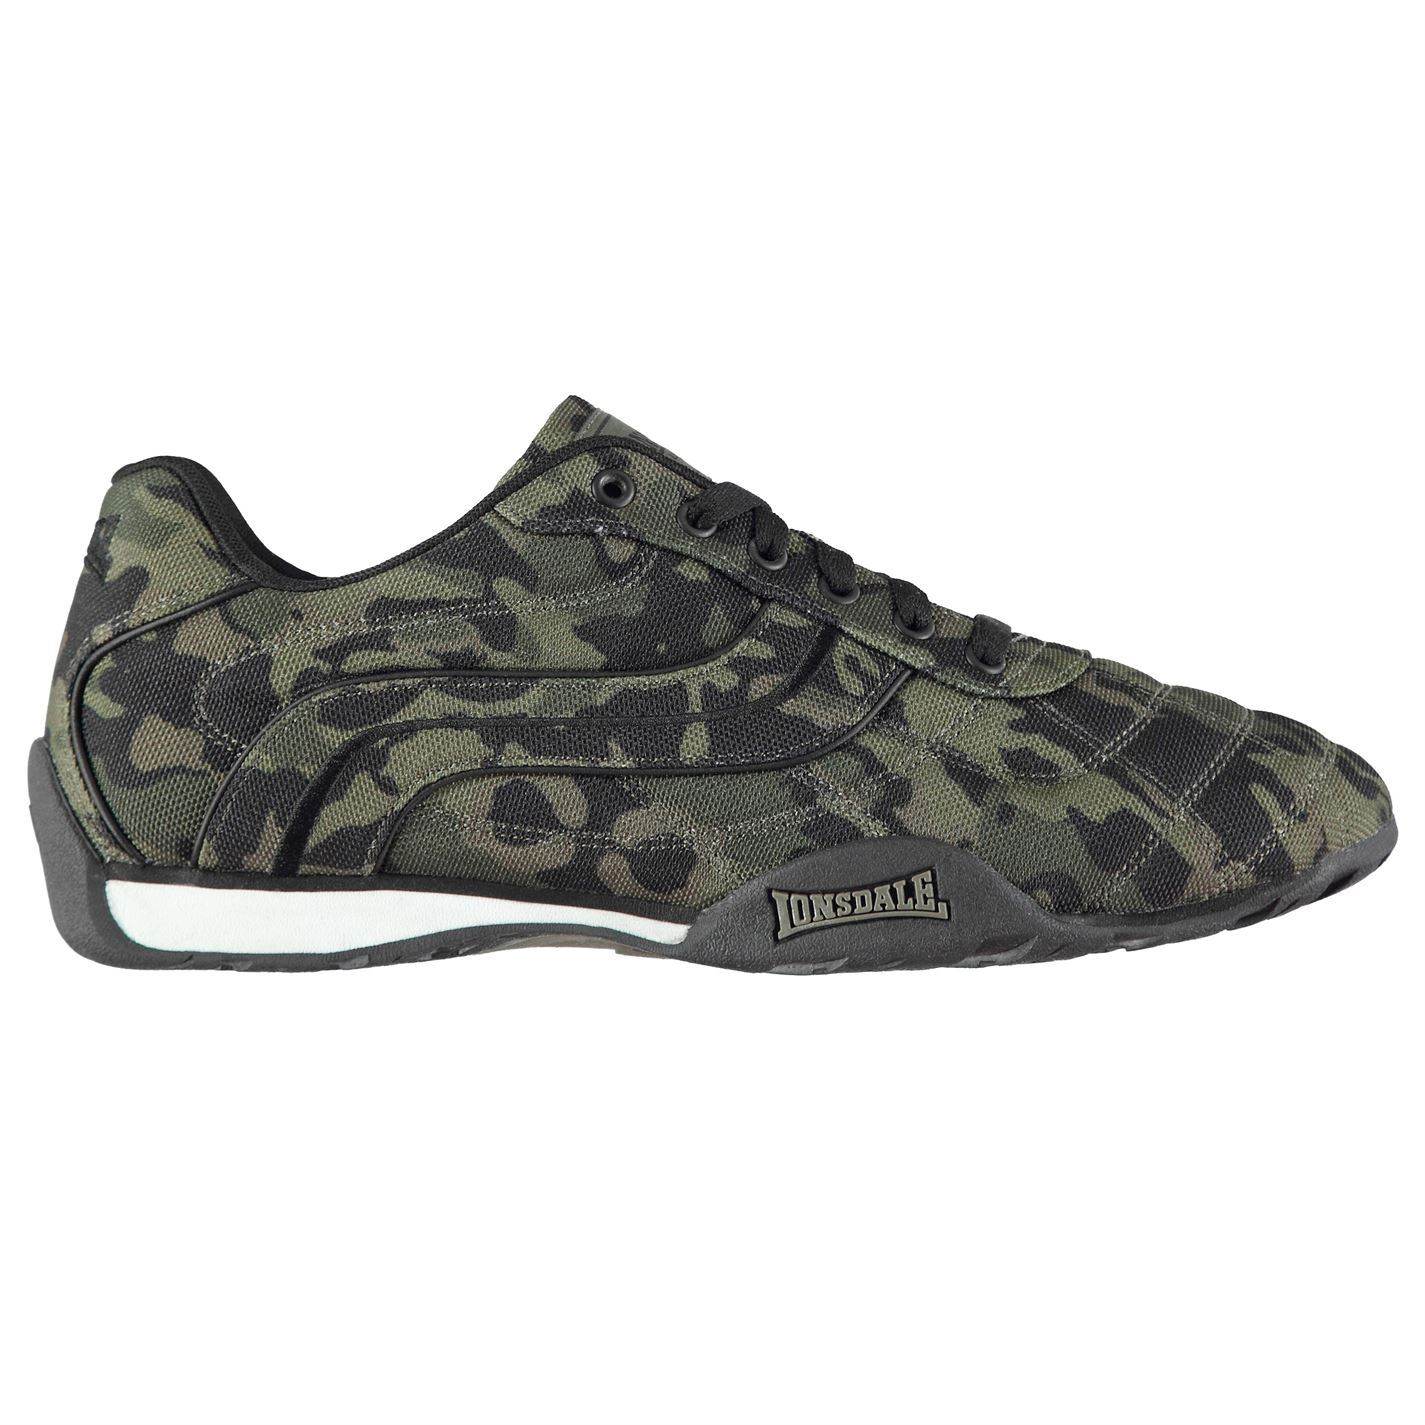 ... Lonsdale Camden Camouflage Trainers Mens Green Shoes Sneakers Footwear  ...